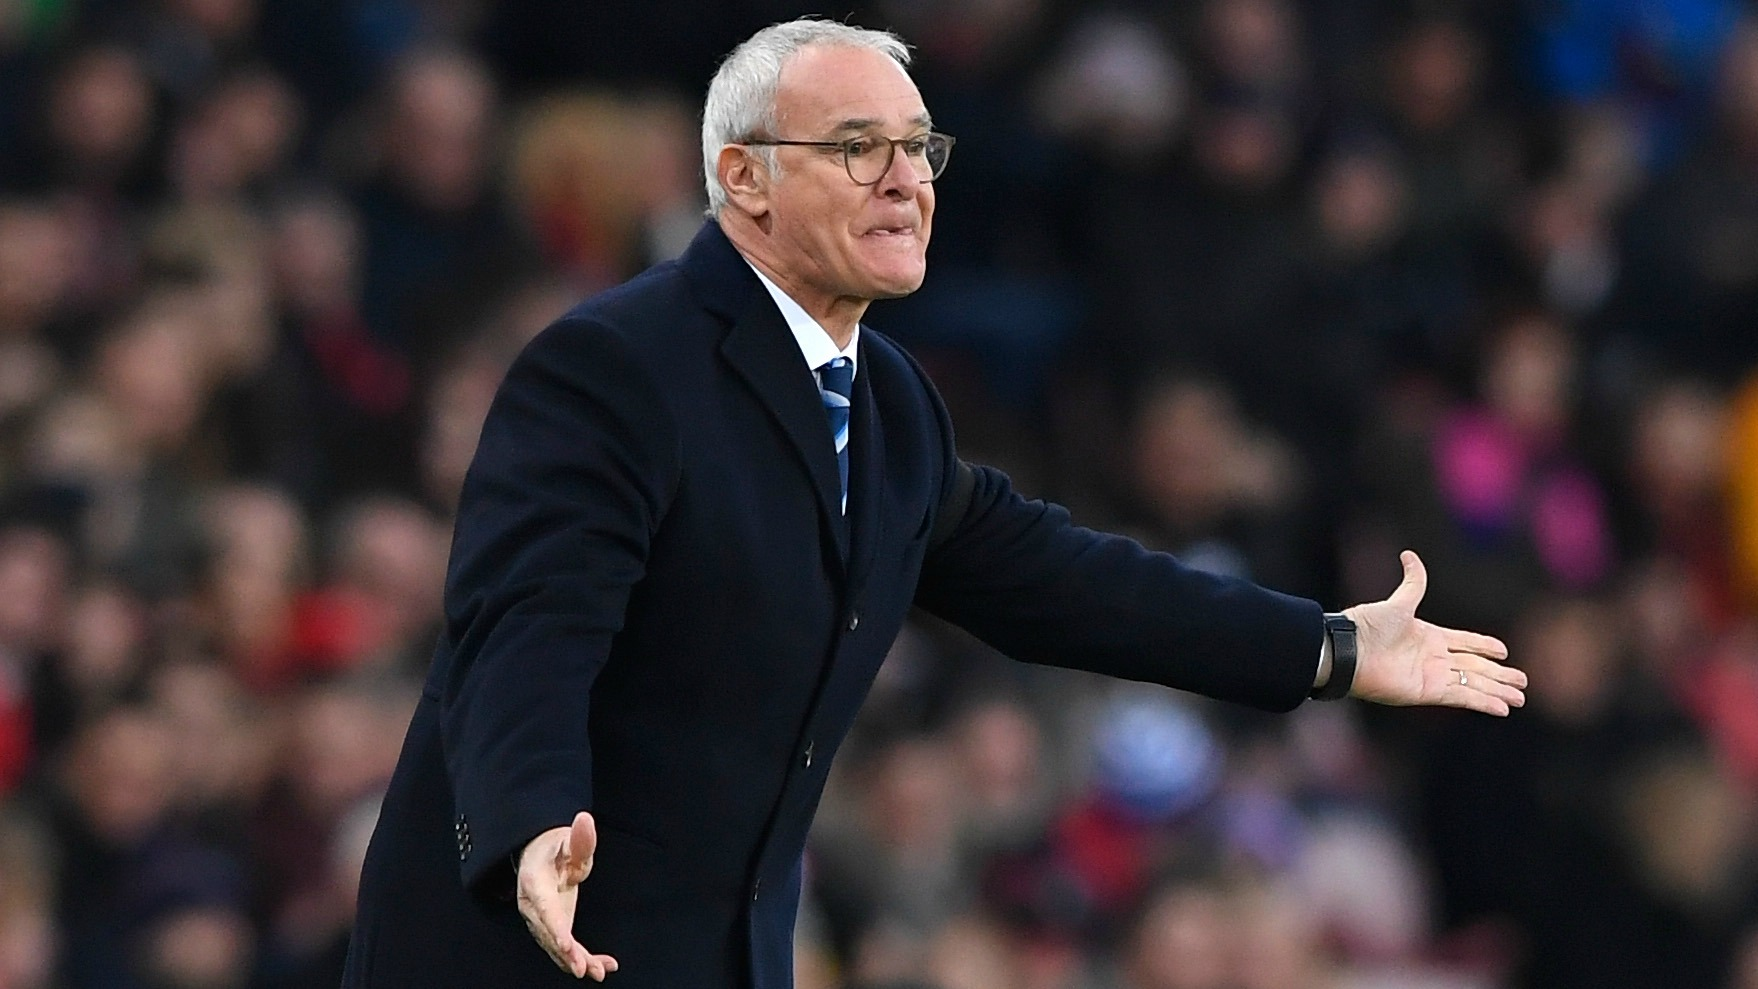 Leicester are the worst defending champs in history, but we shouldn't be surprised